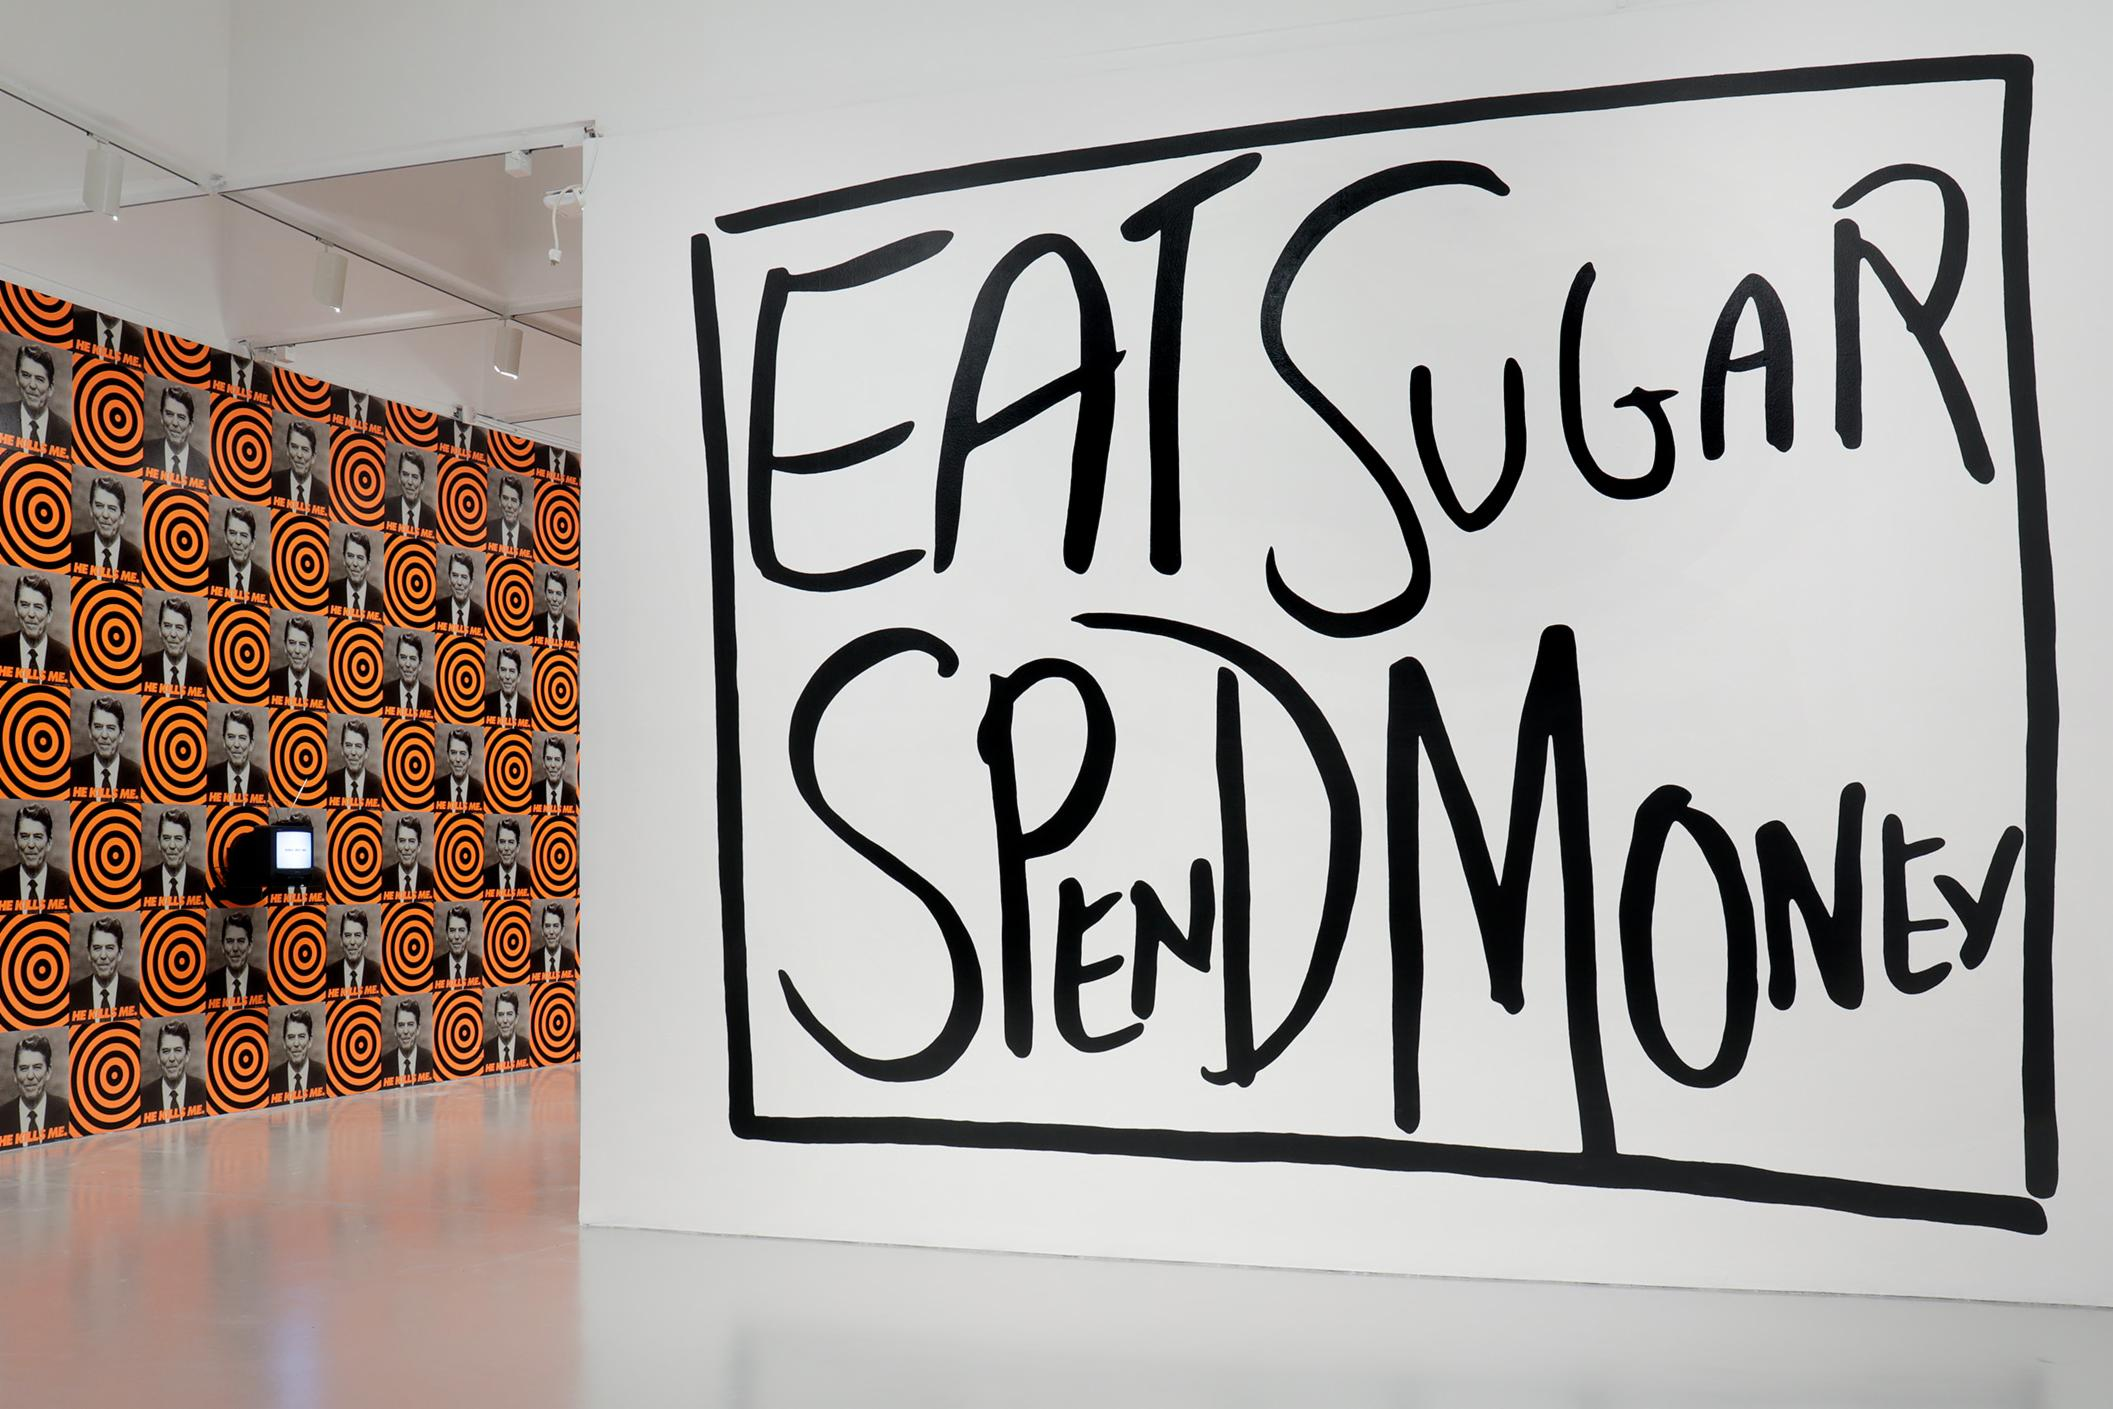 How The Glitz And Excess Of 1980s Shaped Contemporary Art